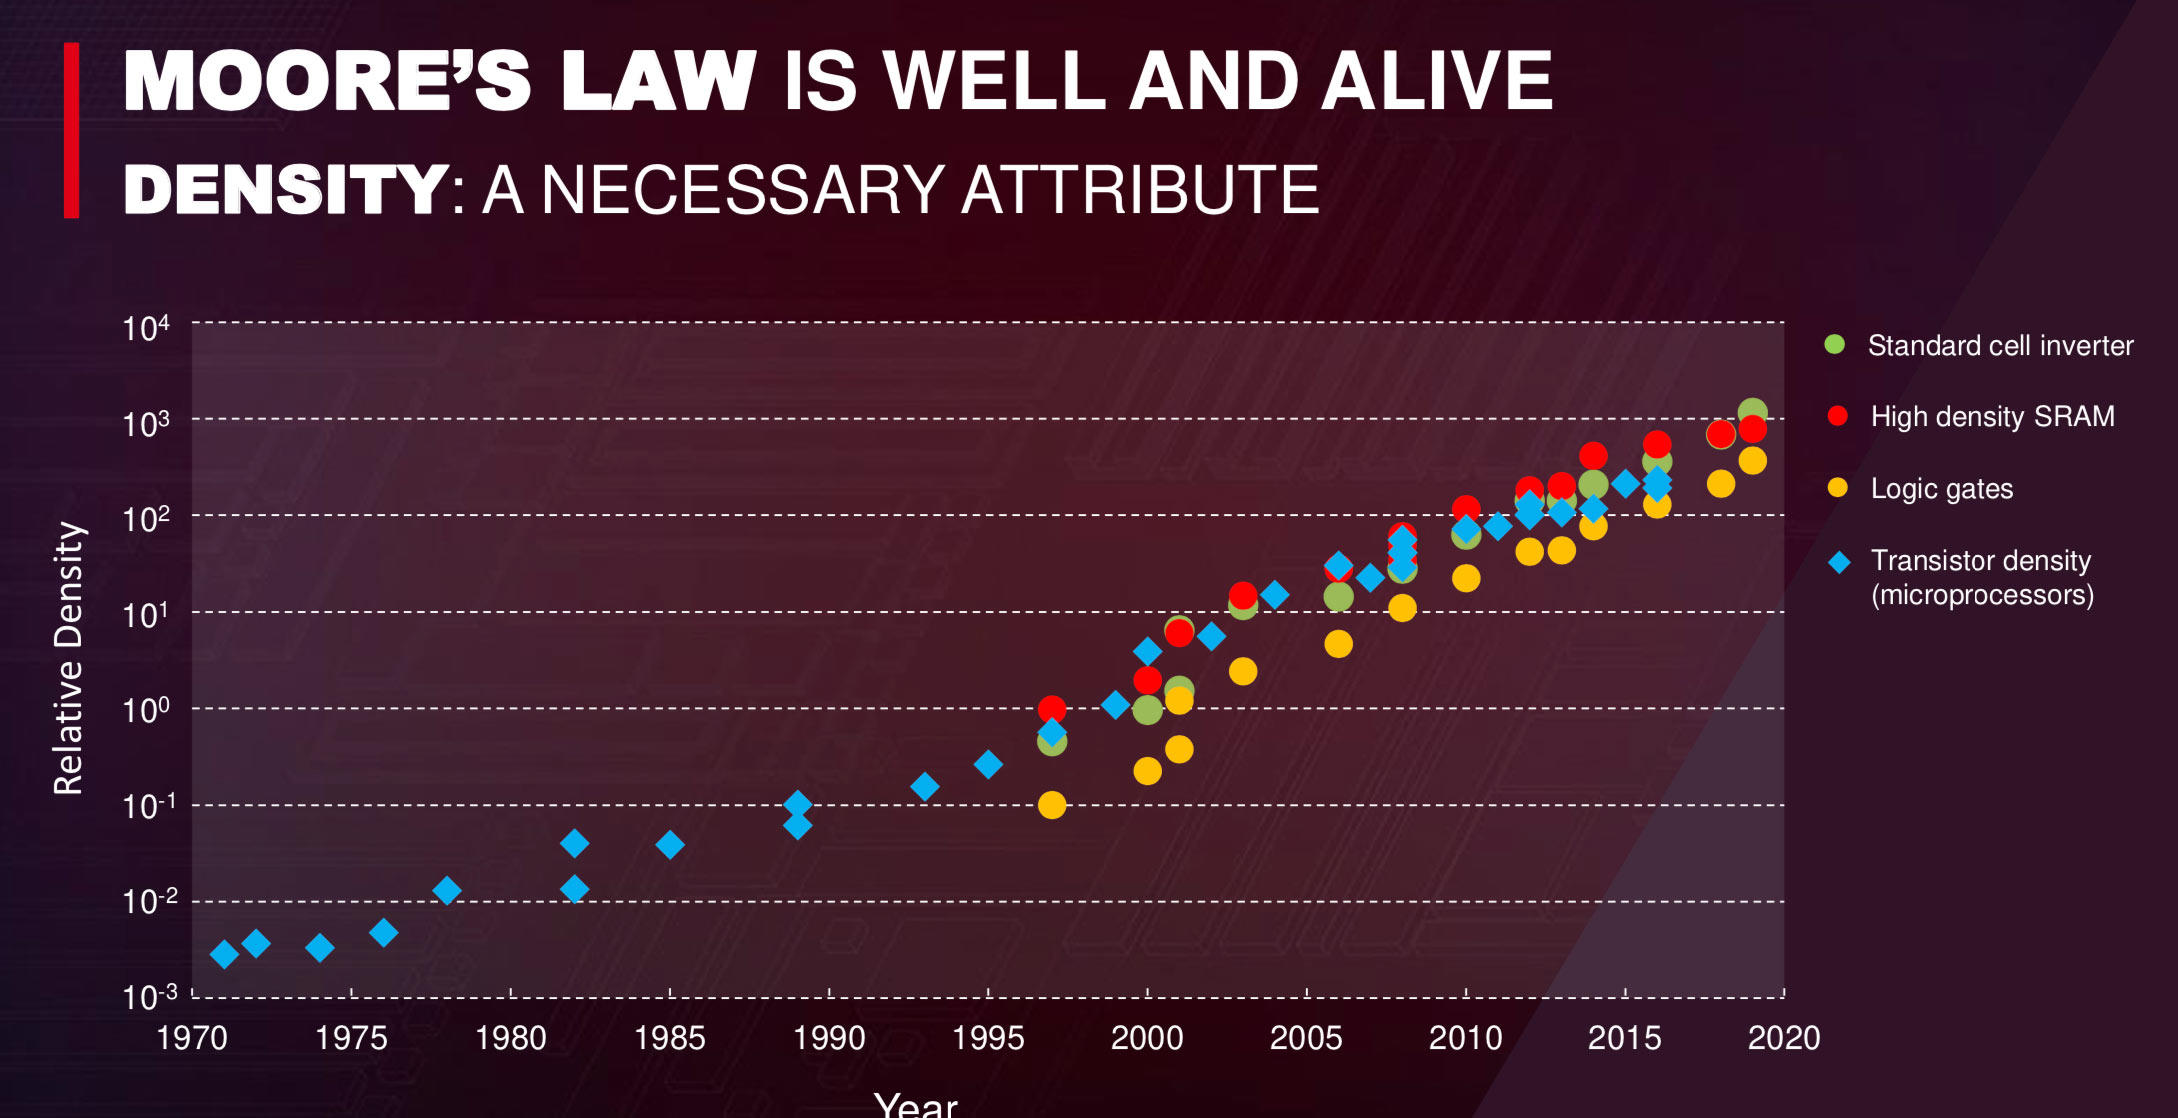 TSMC and Moore's Law